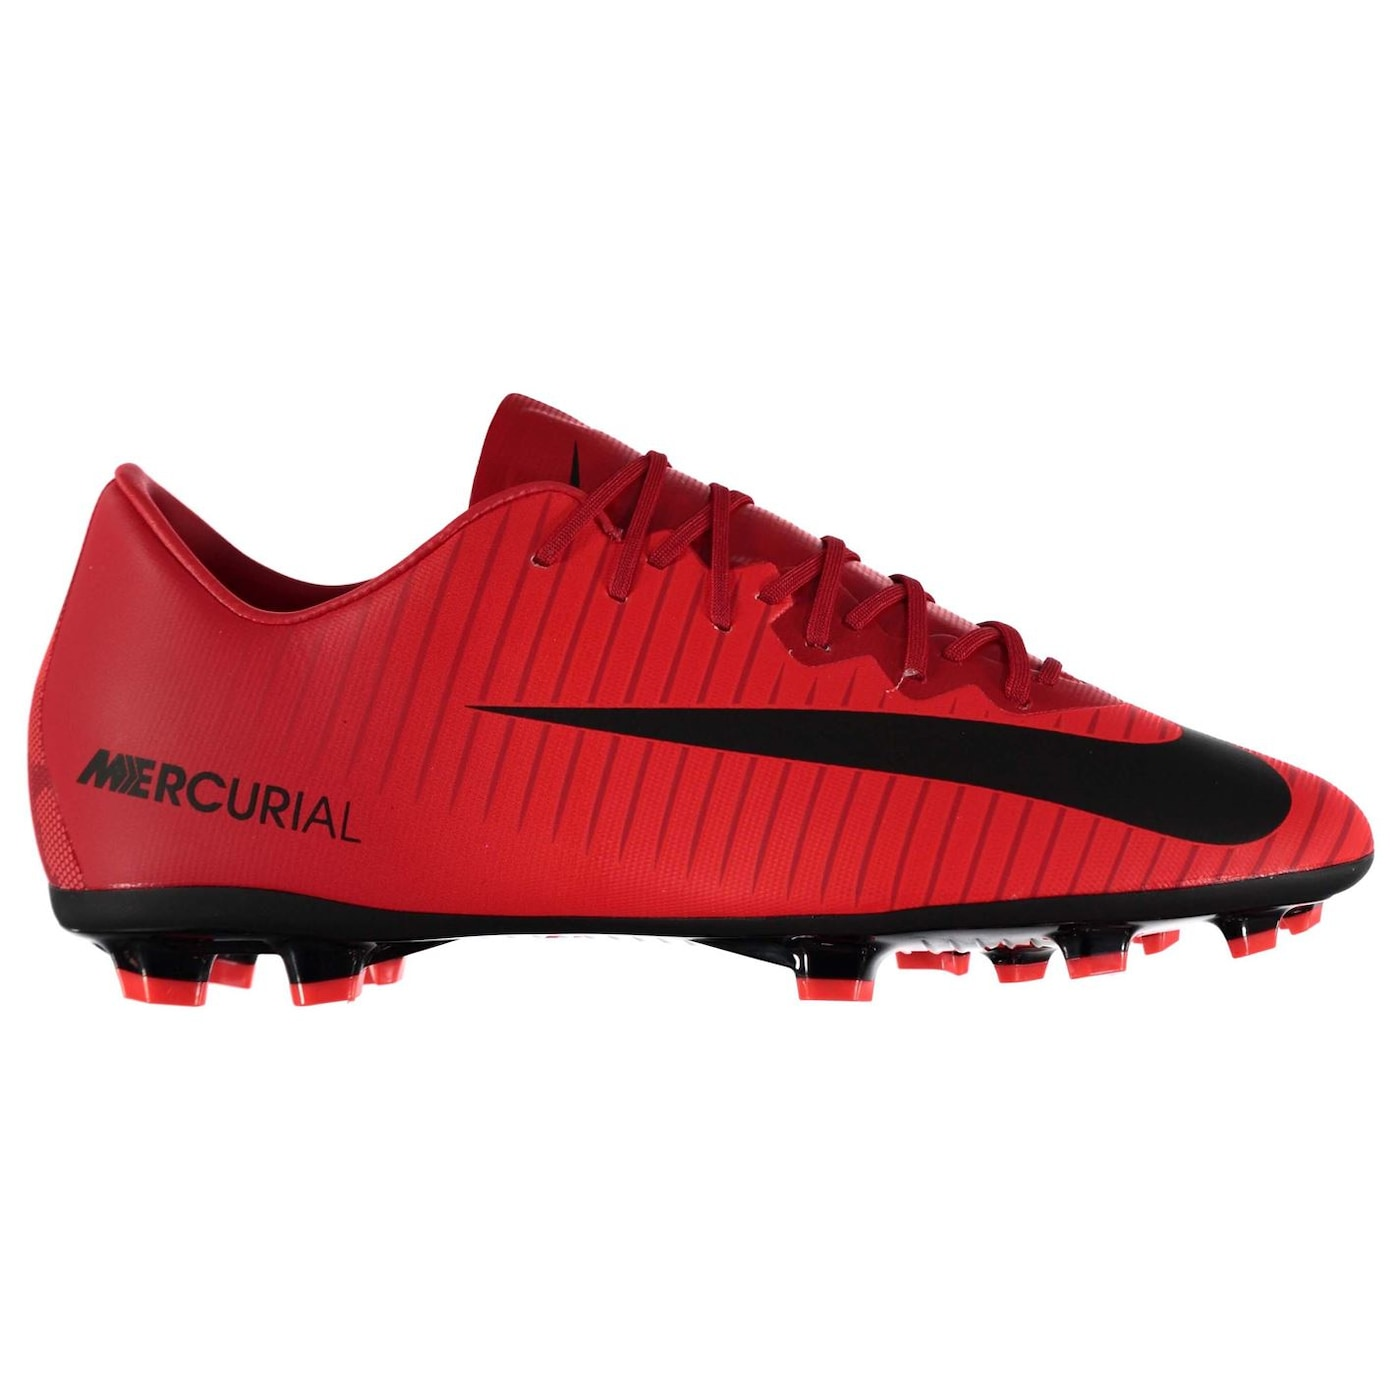 Nike Mercurial Vapor Junior FG Football Boots